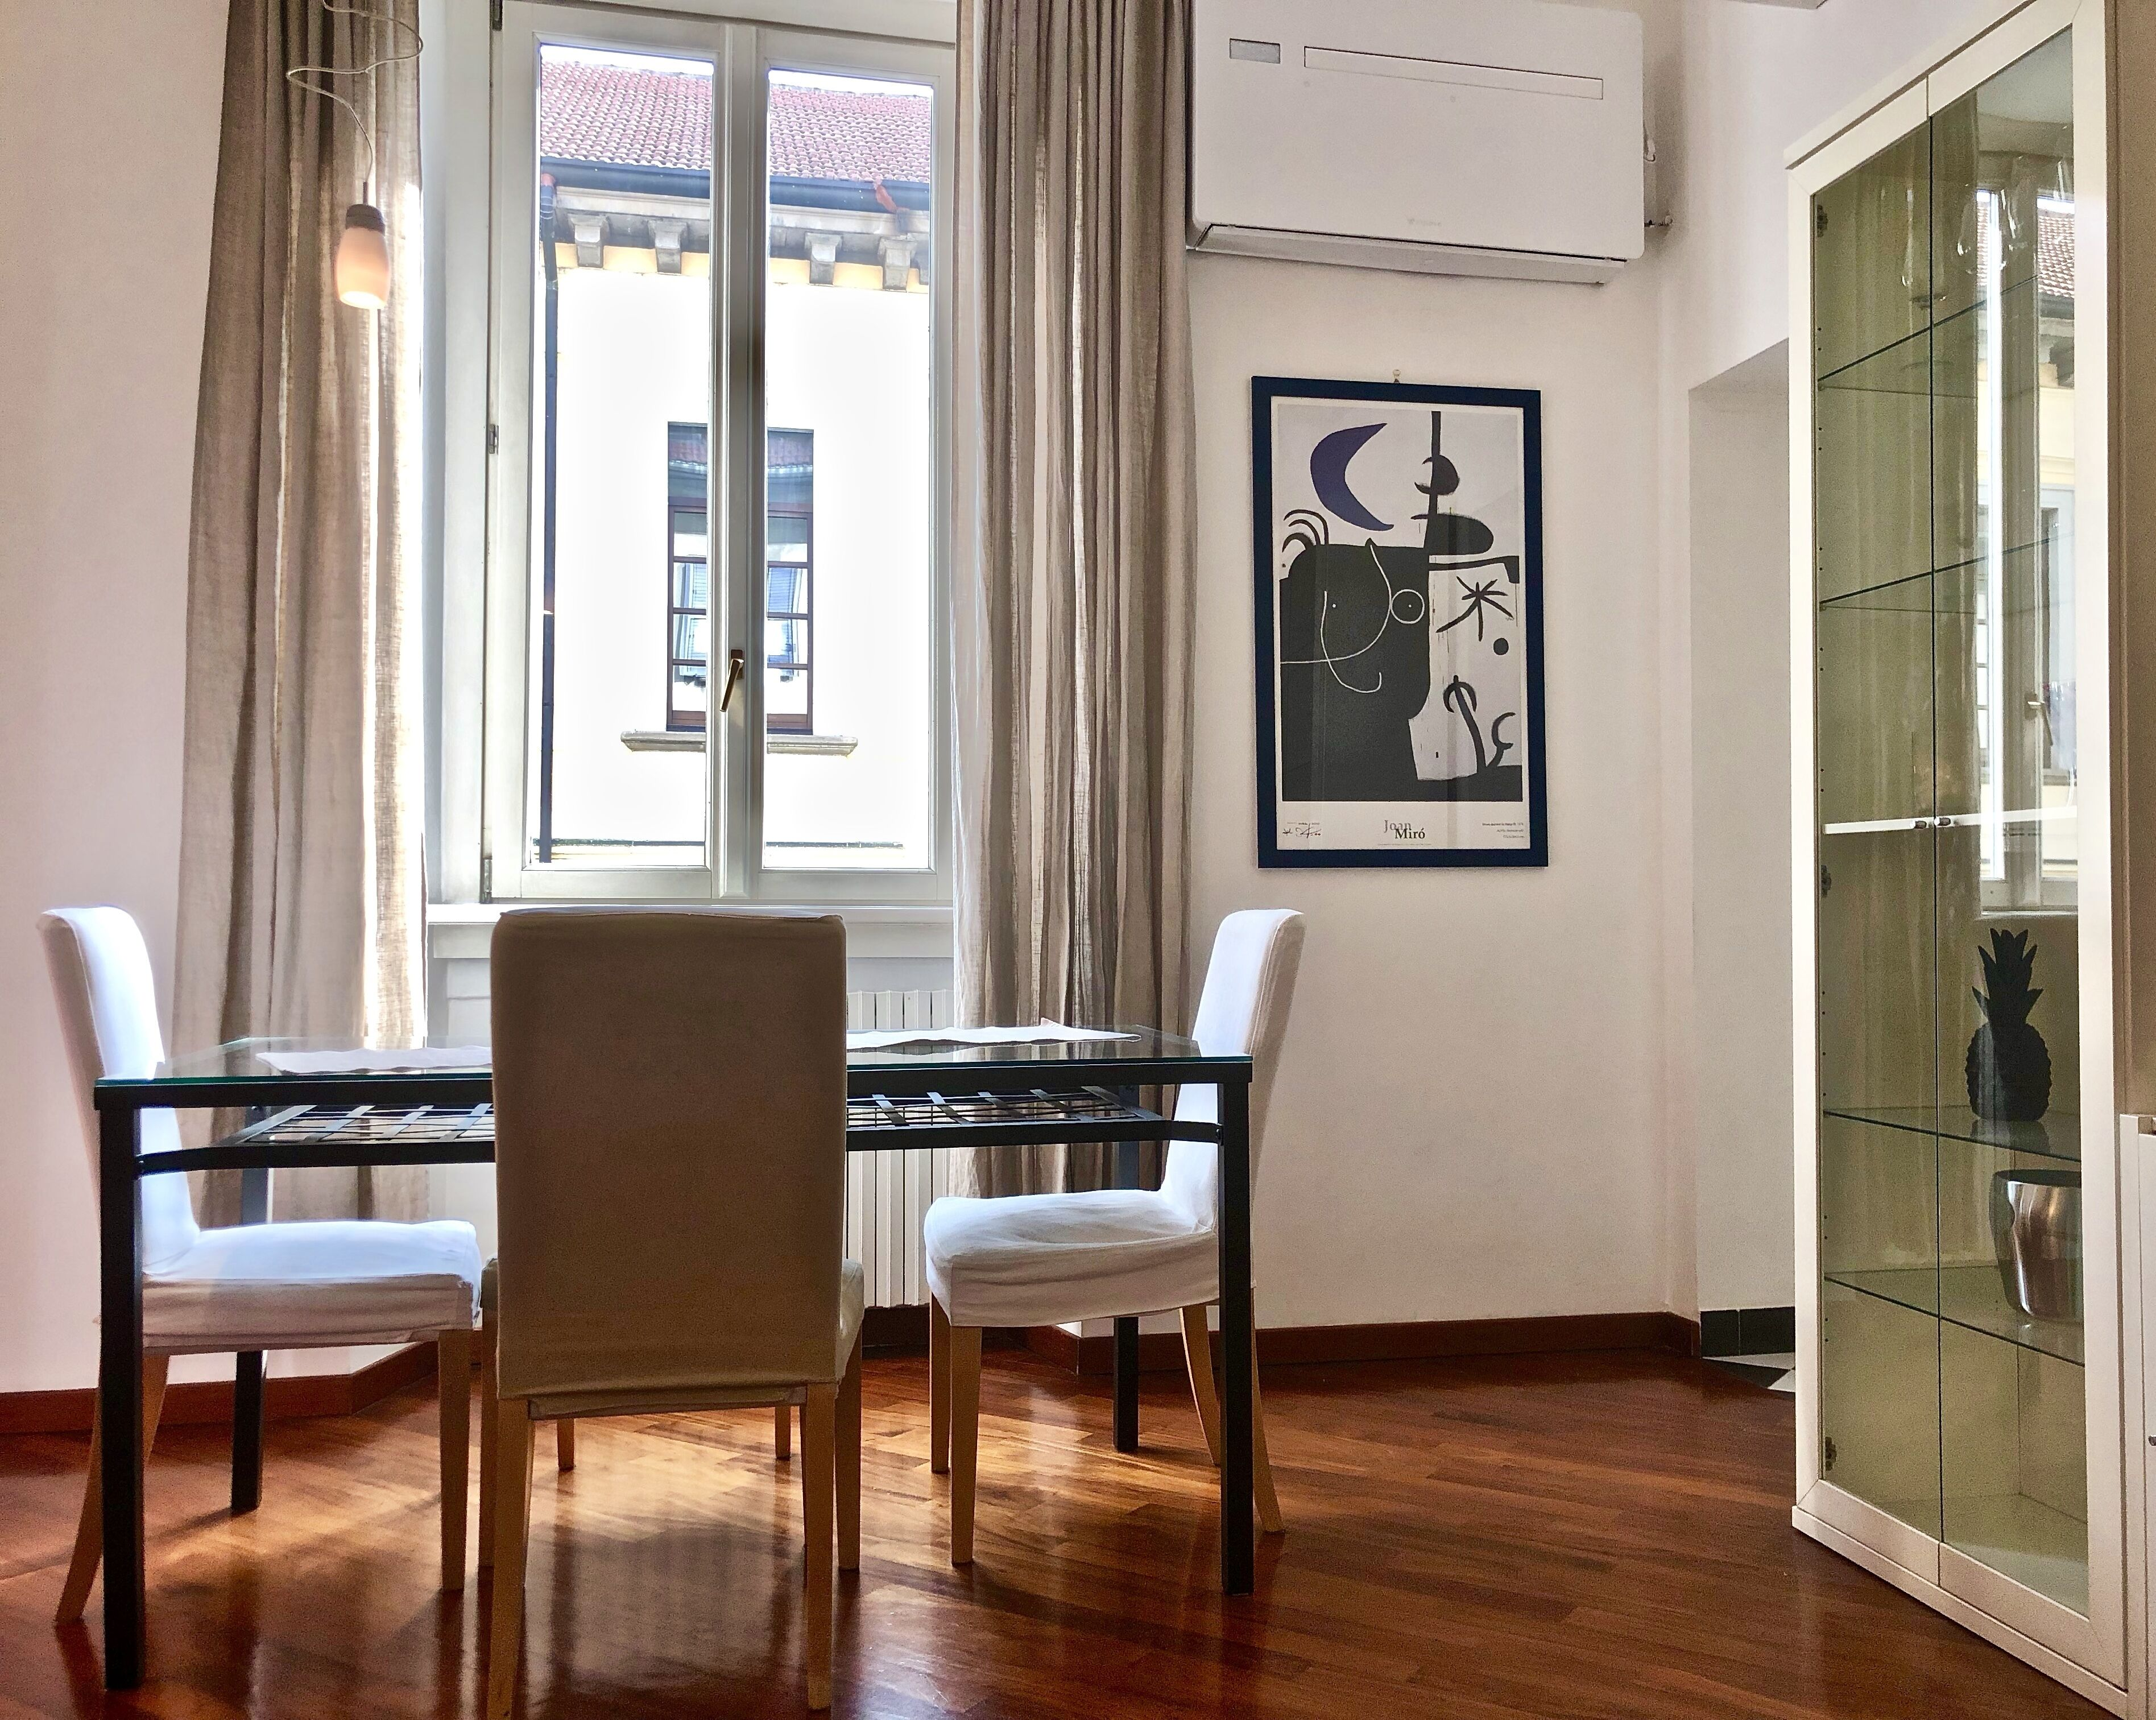 Exclusive Apartment In The Heart Of Milan Between Porta Nuova And Brera District Mailand Hotelbewertungen 2020 Expedia Ch